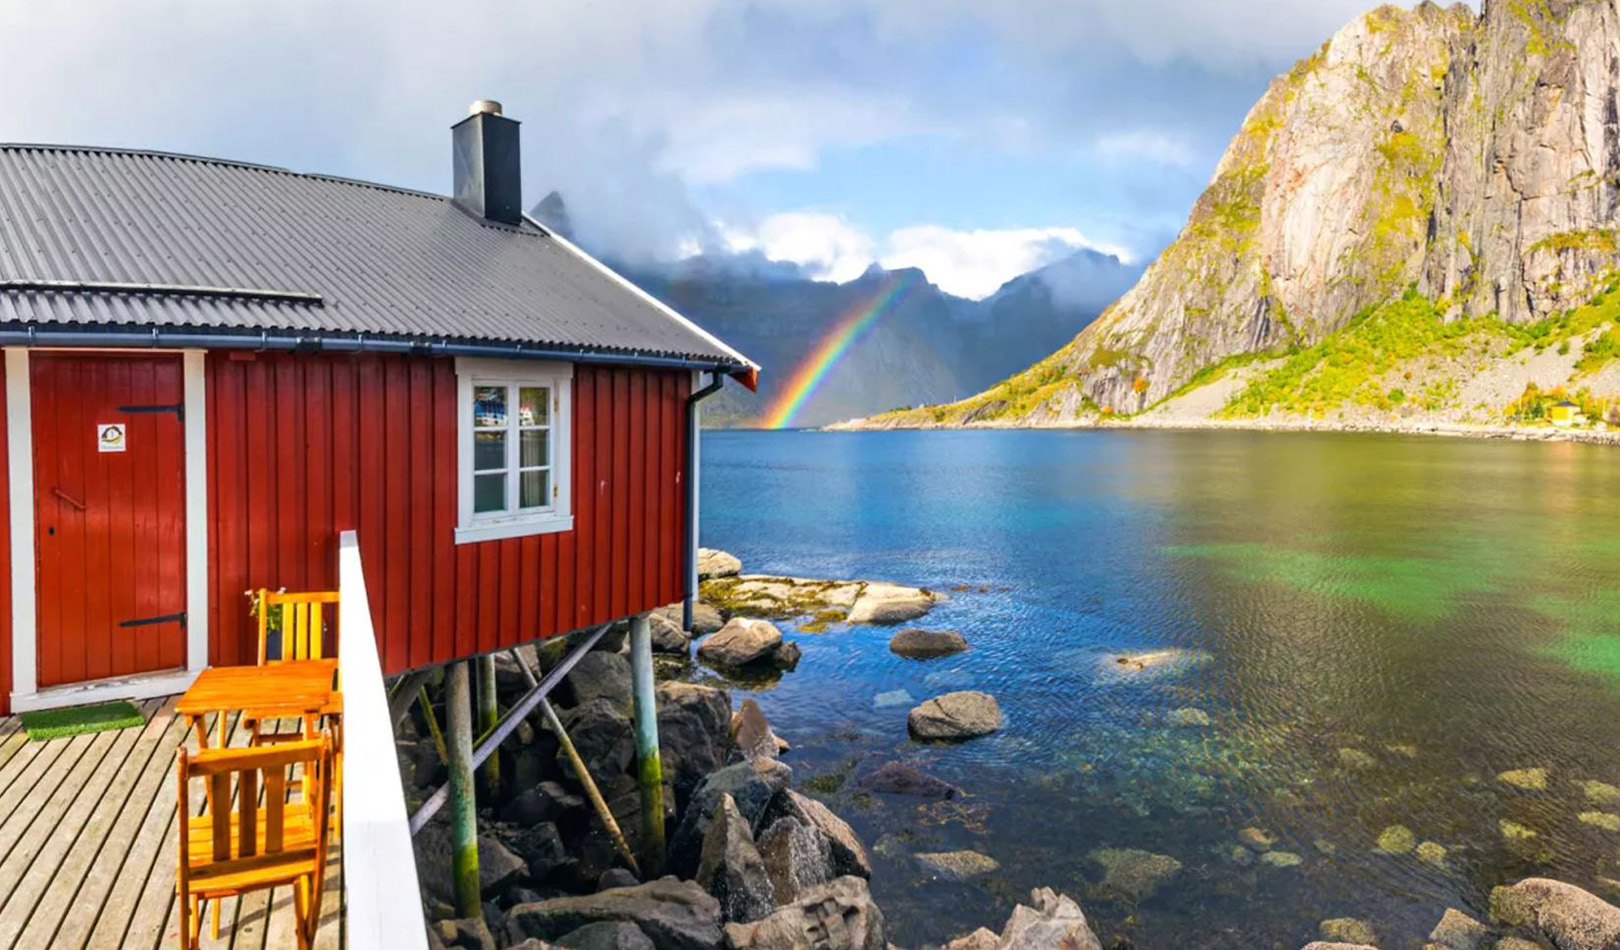 Red sea cabin with ocean, mountains and rainbow.